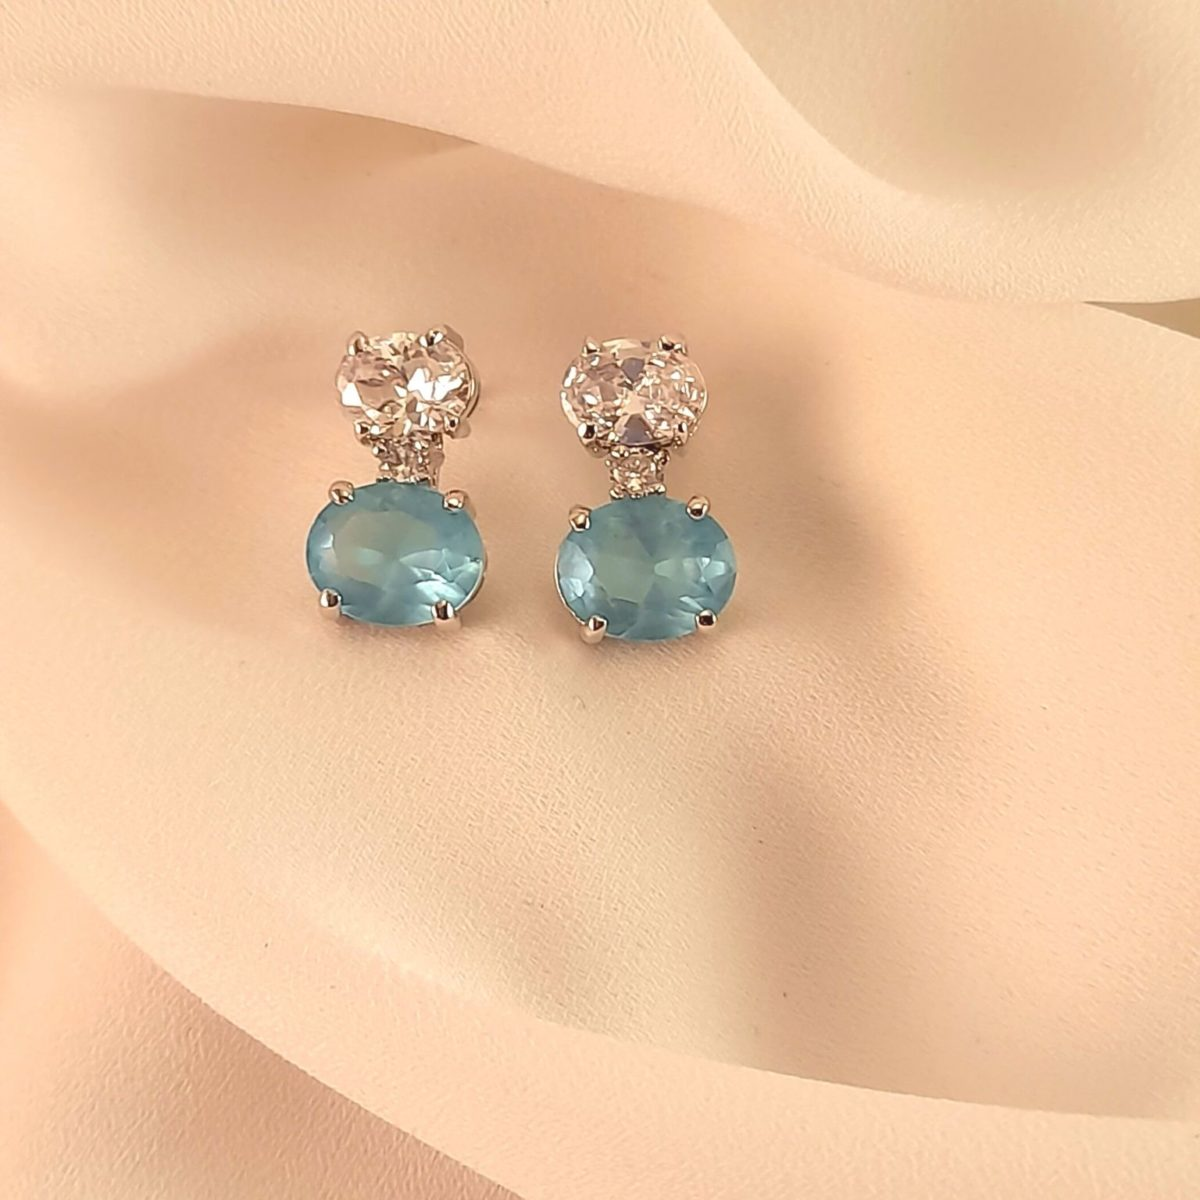 Earrings With Blue And Shiny Stones